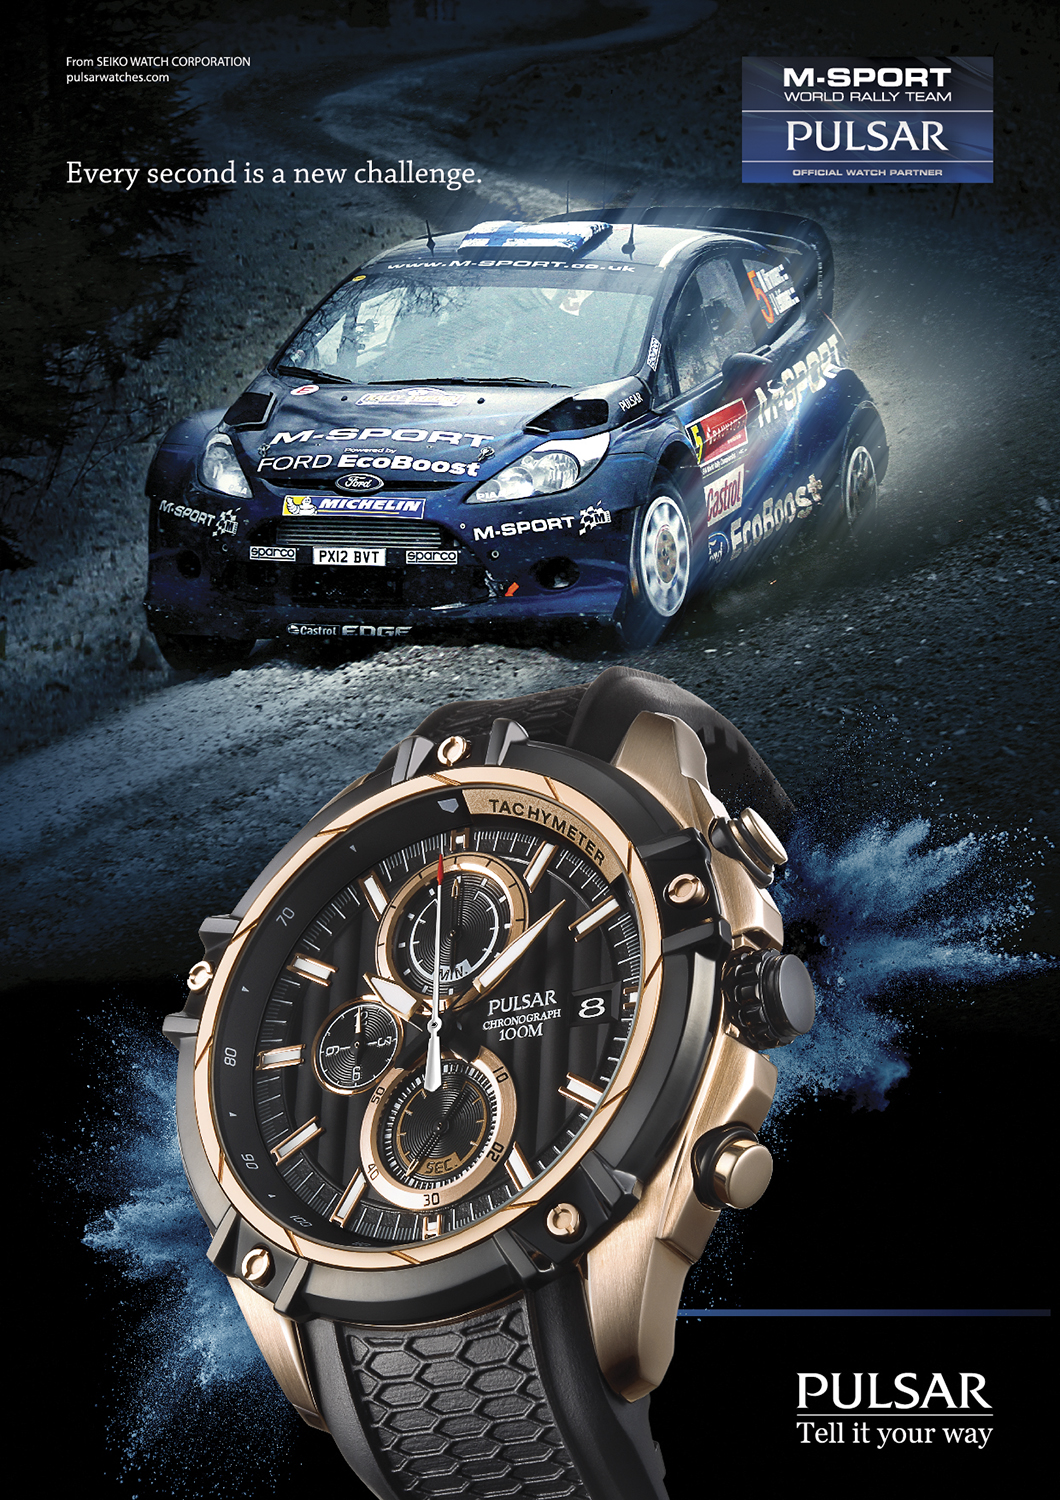 auto luxury racing on watchtime watches soldiers images by pinterest best inspired automobiles